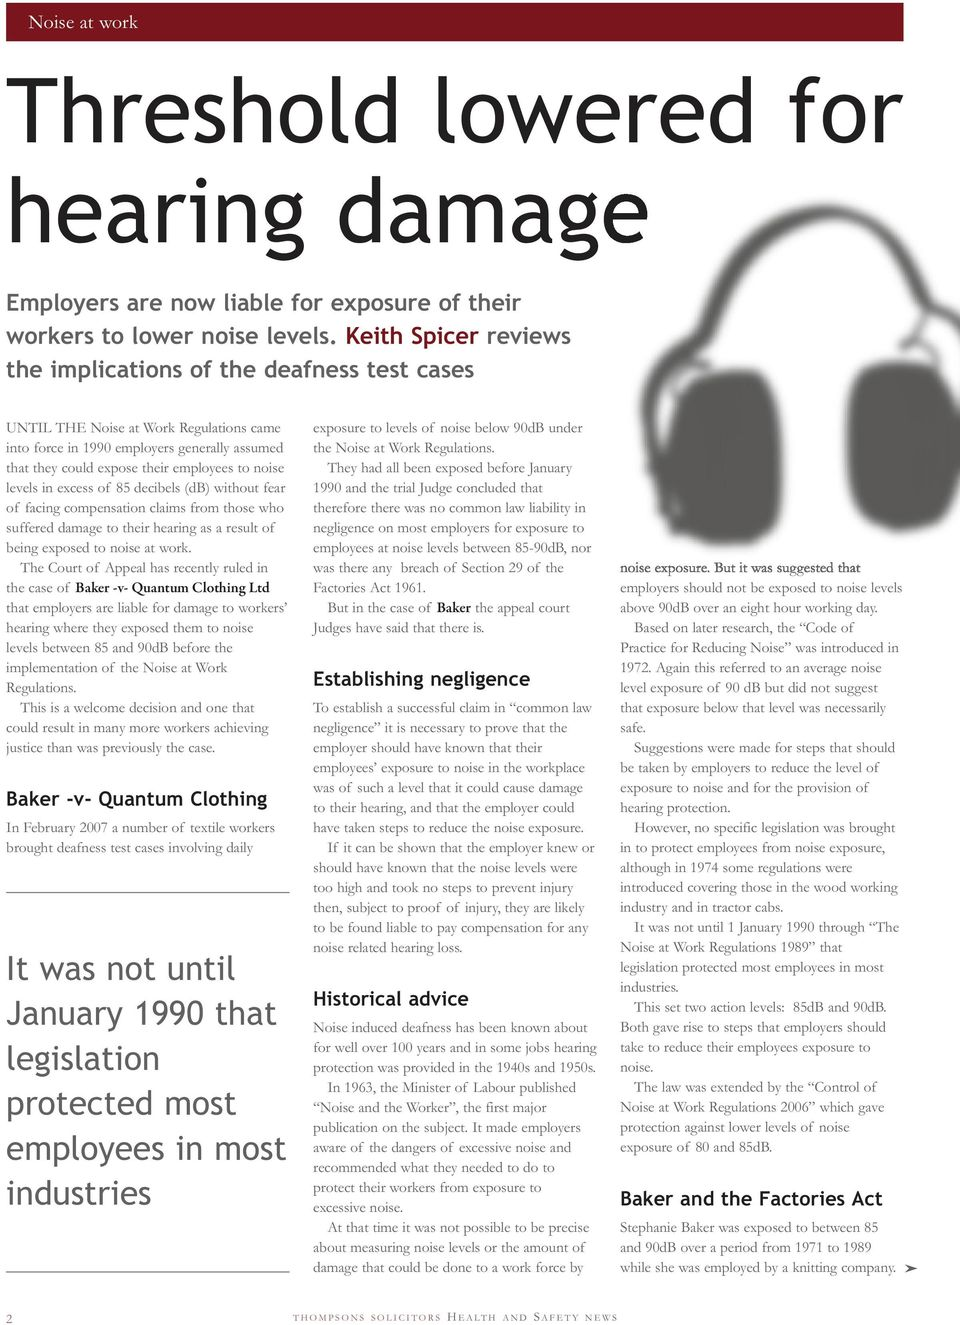 noise levels in excess of 85 decibels (db) without fear of facing compensation claims from those who suffered damage to their hearing as a result of being exposed to noise at work.